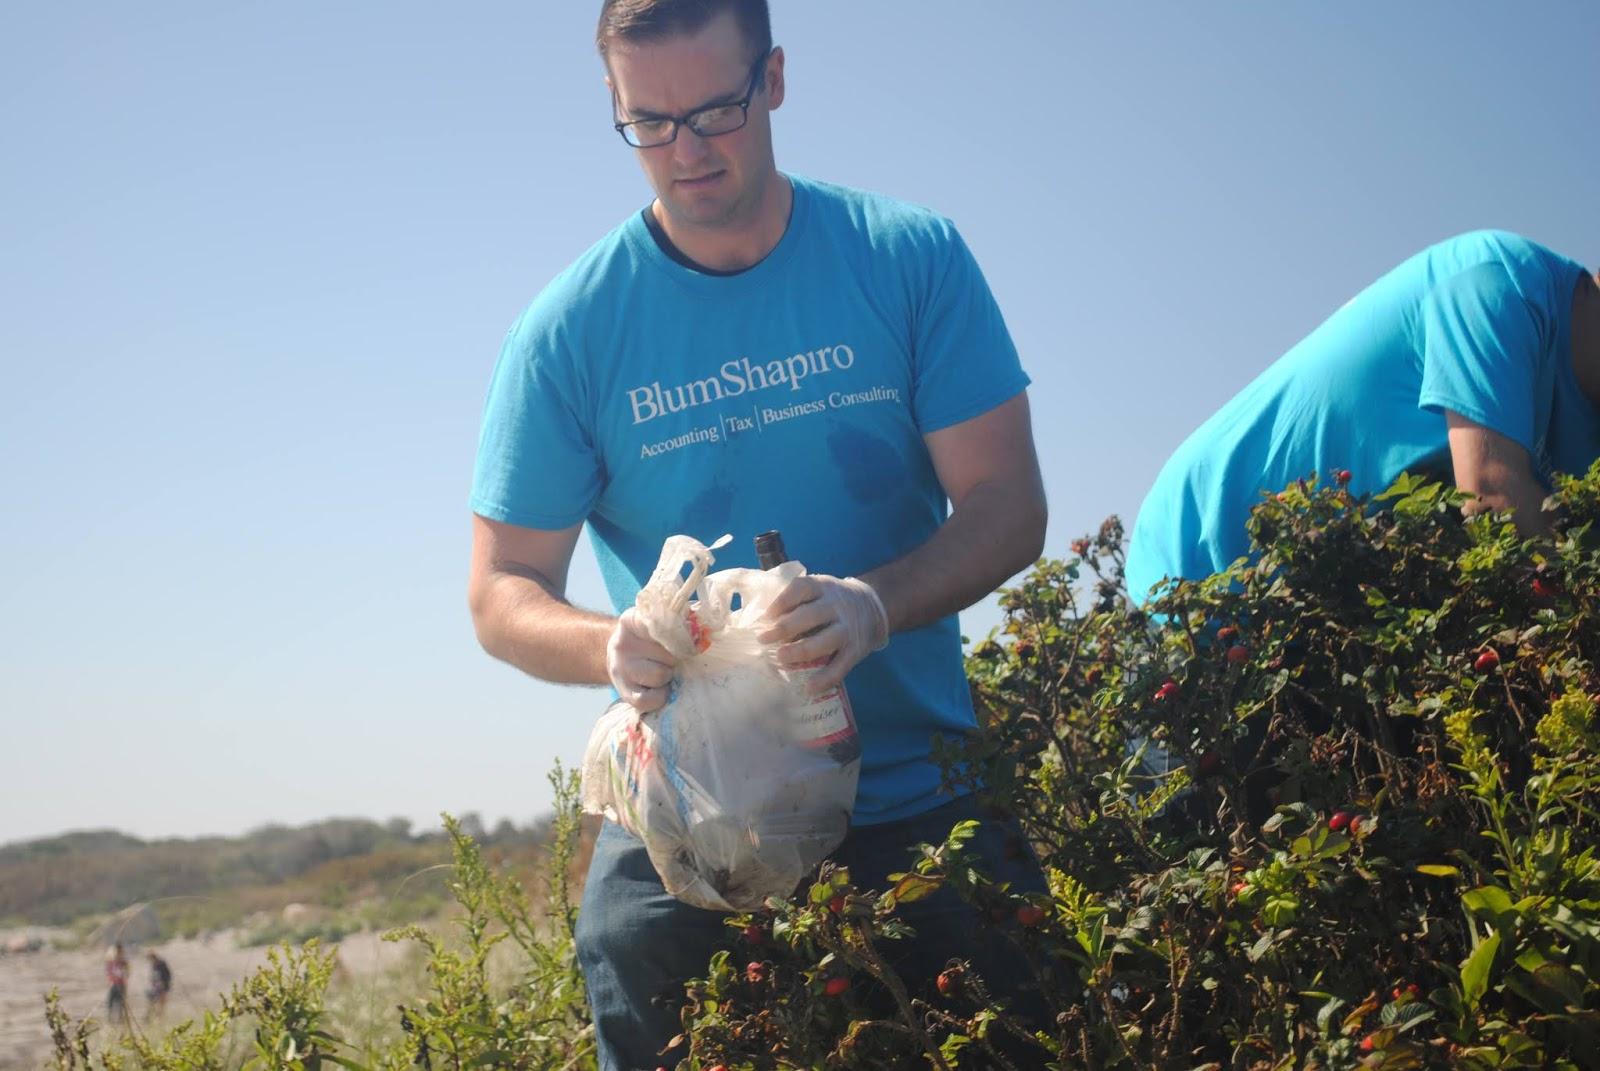 Blum Shapiro Consulting volunteer at beach cleanup